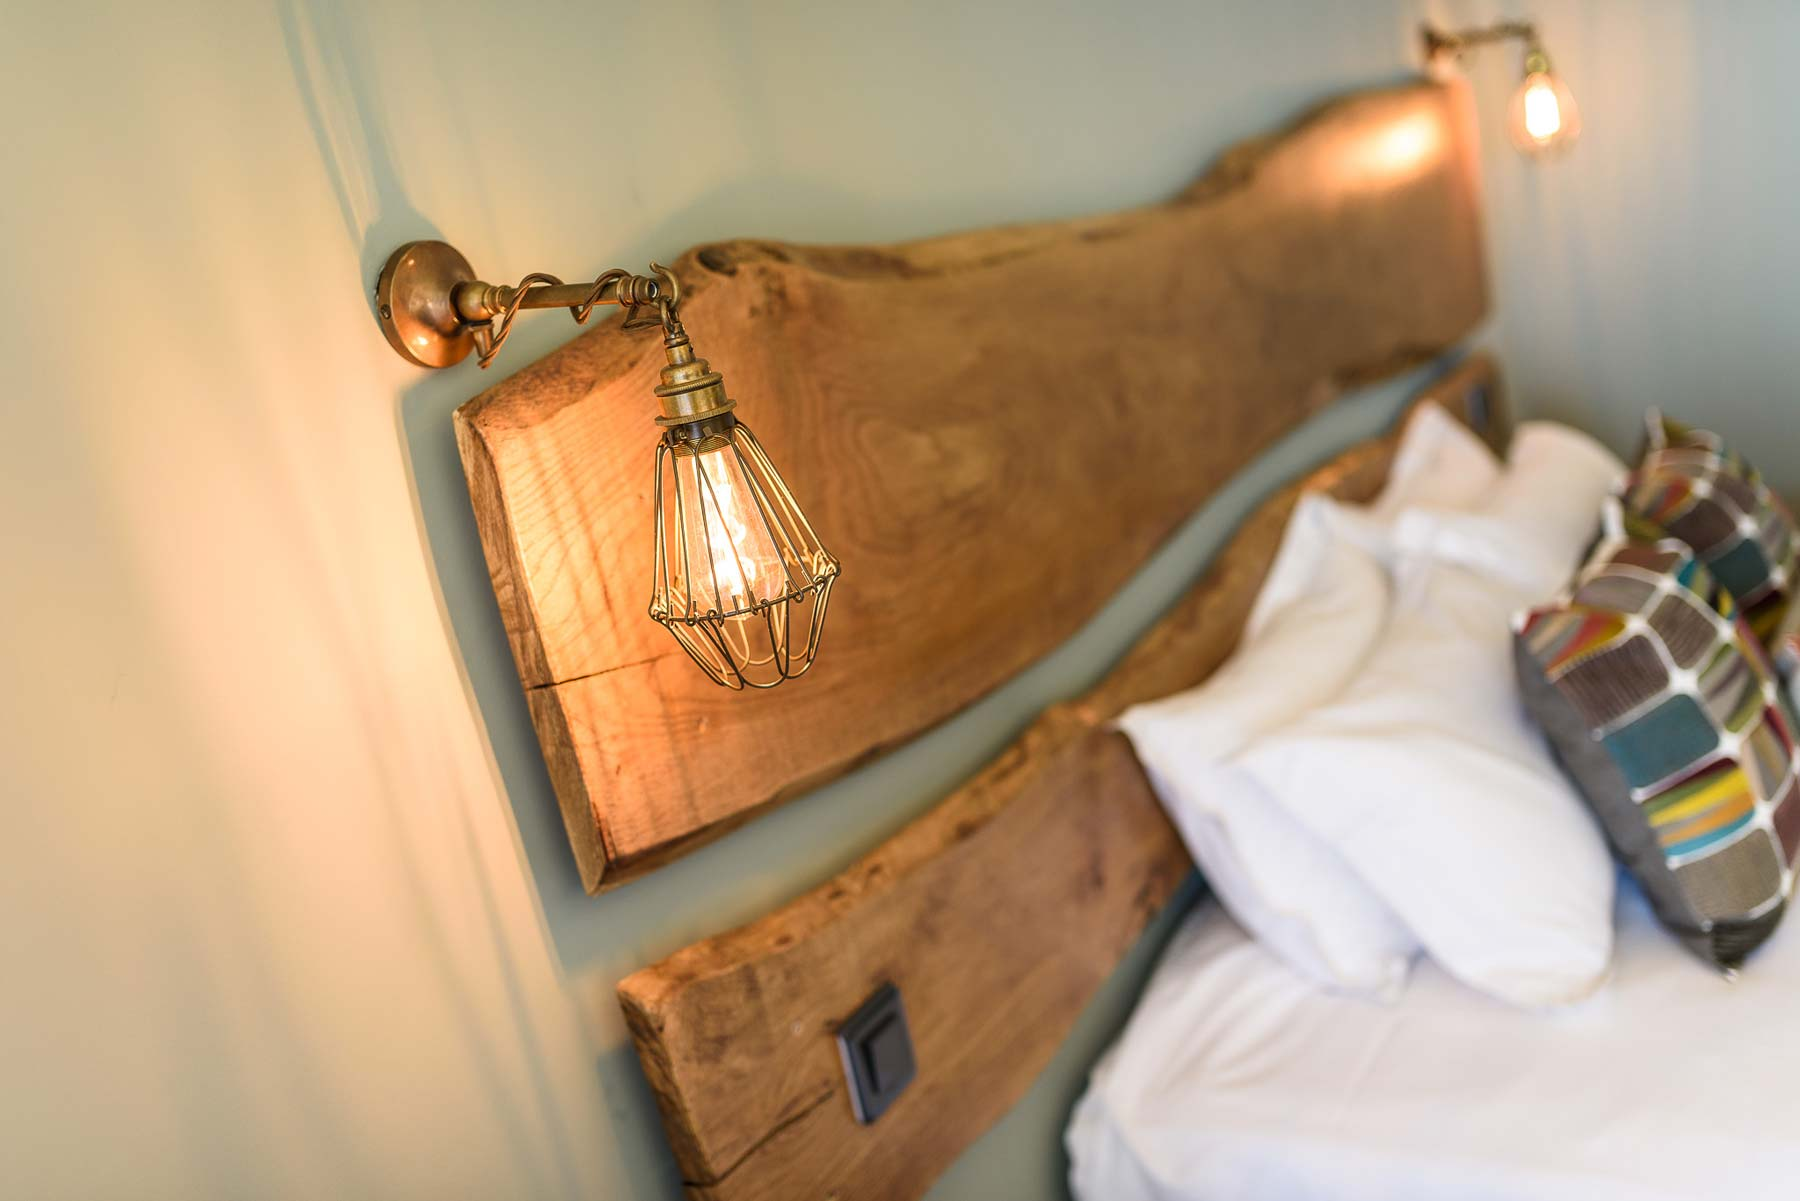 We're exhibiting at Sleep in London this November